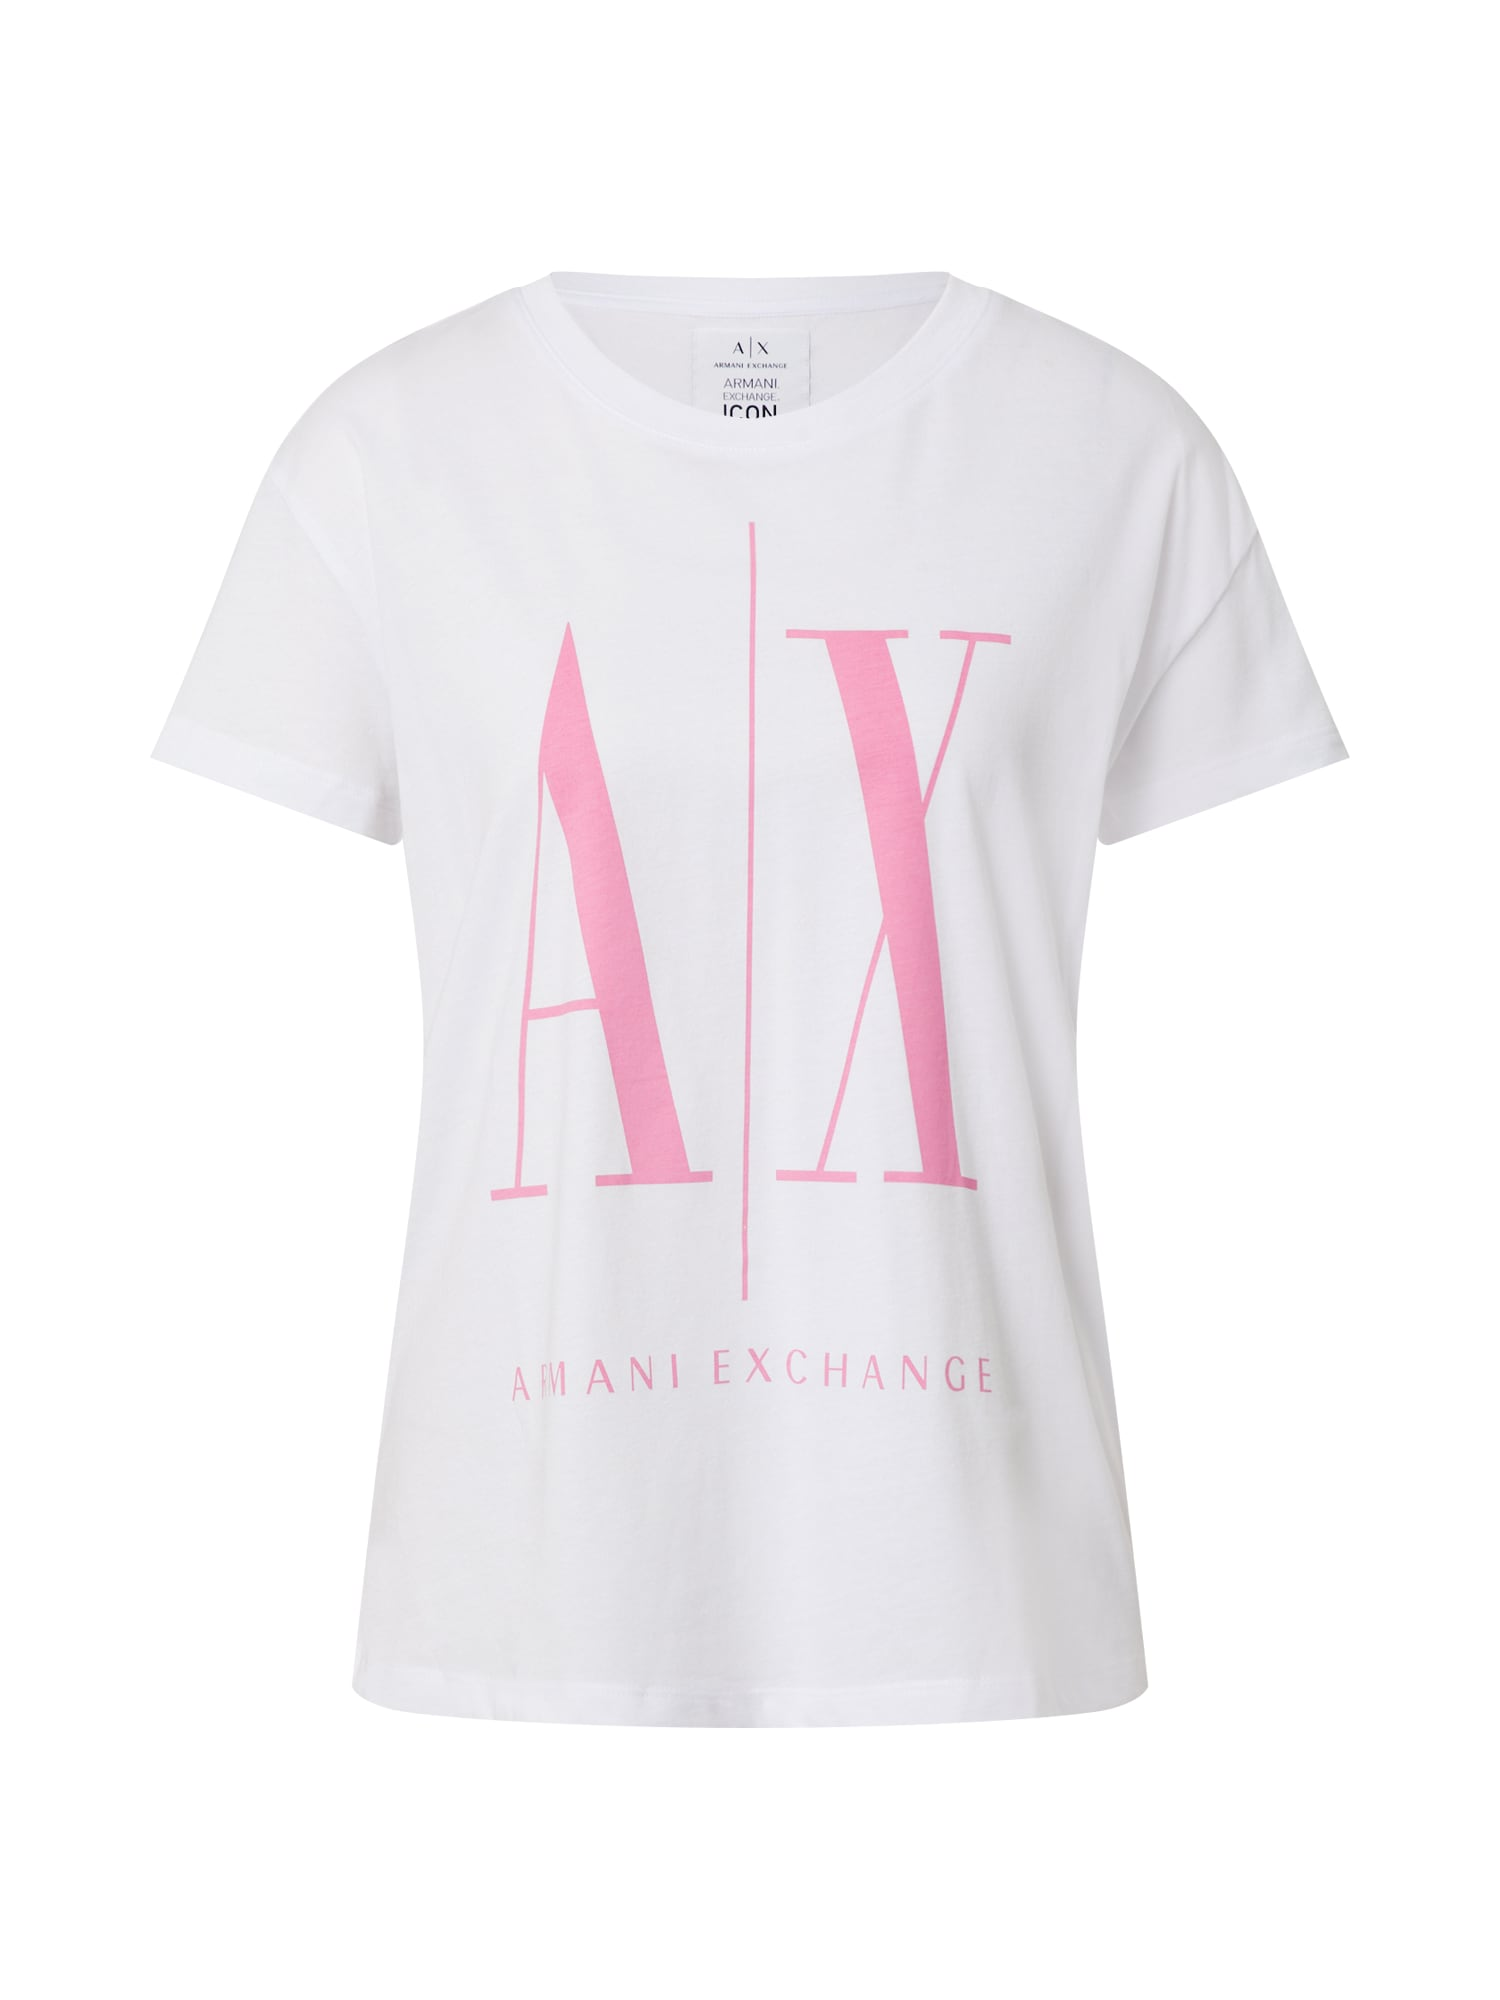 ARMANI EXCHANGE Tričko bílá pink Armani Exchange